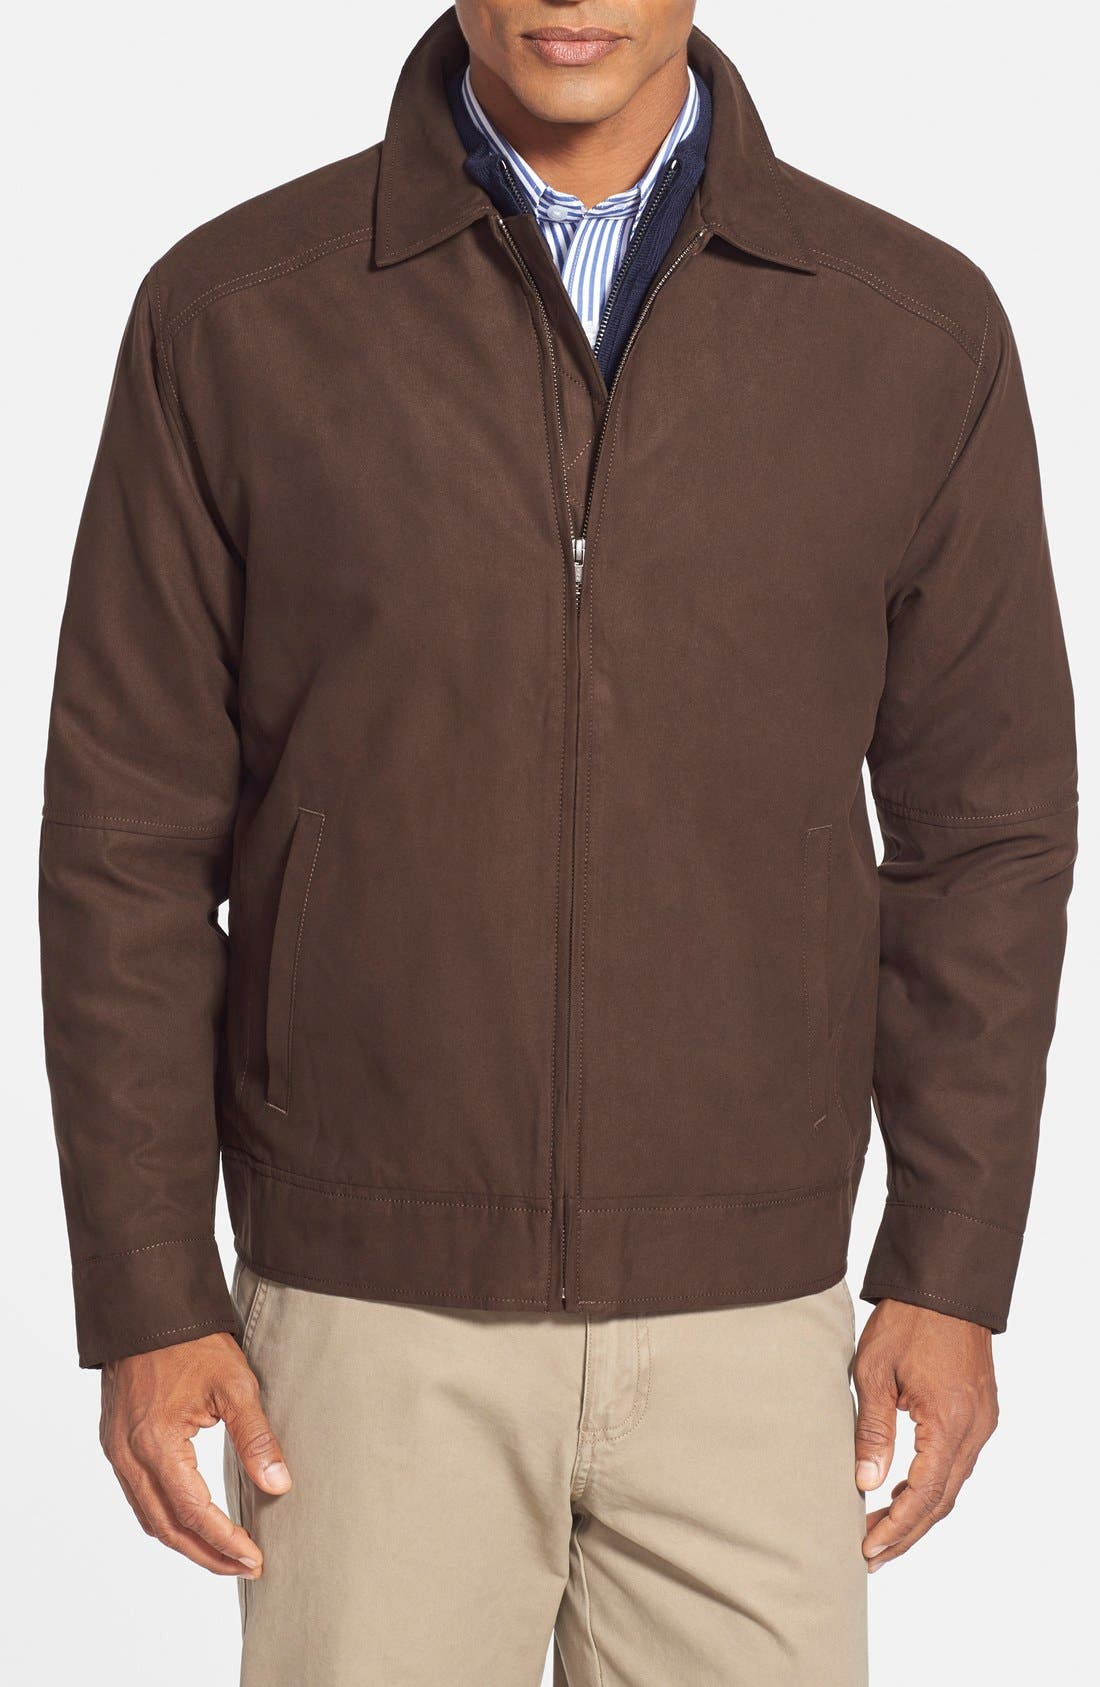 Main Image - Cutter & Buck 'Roosevelt' Classic Fit Water Resistant Full Zip Jacket (Online Only)